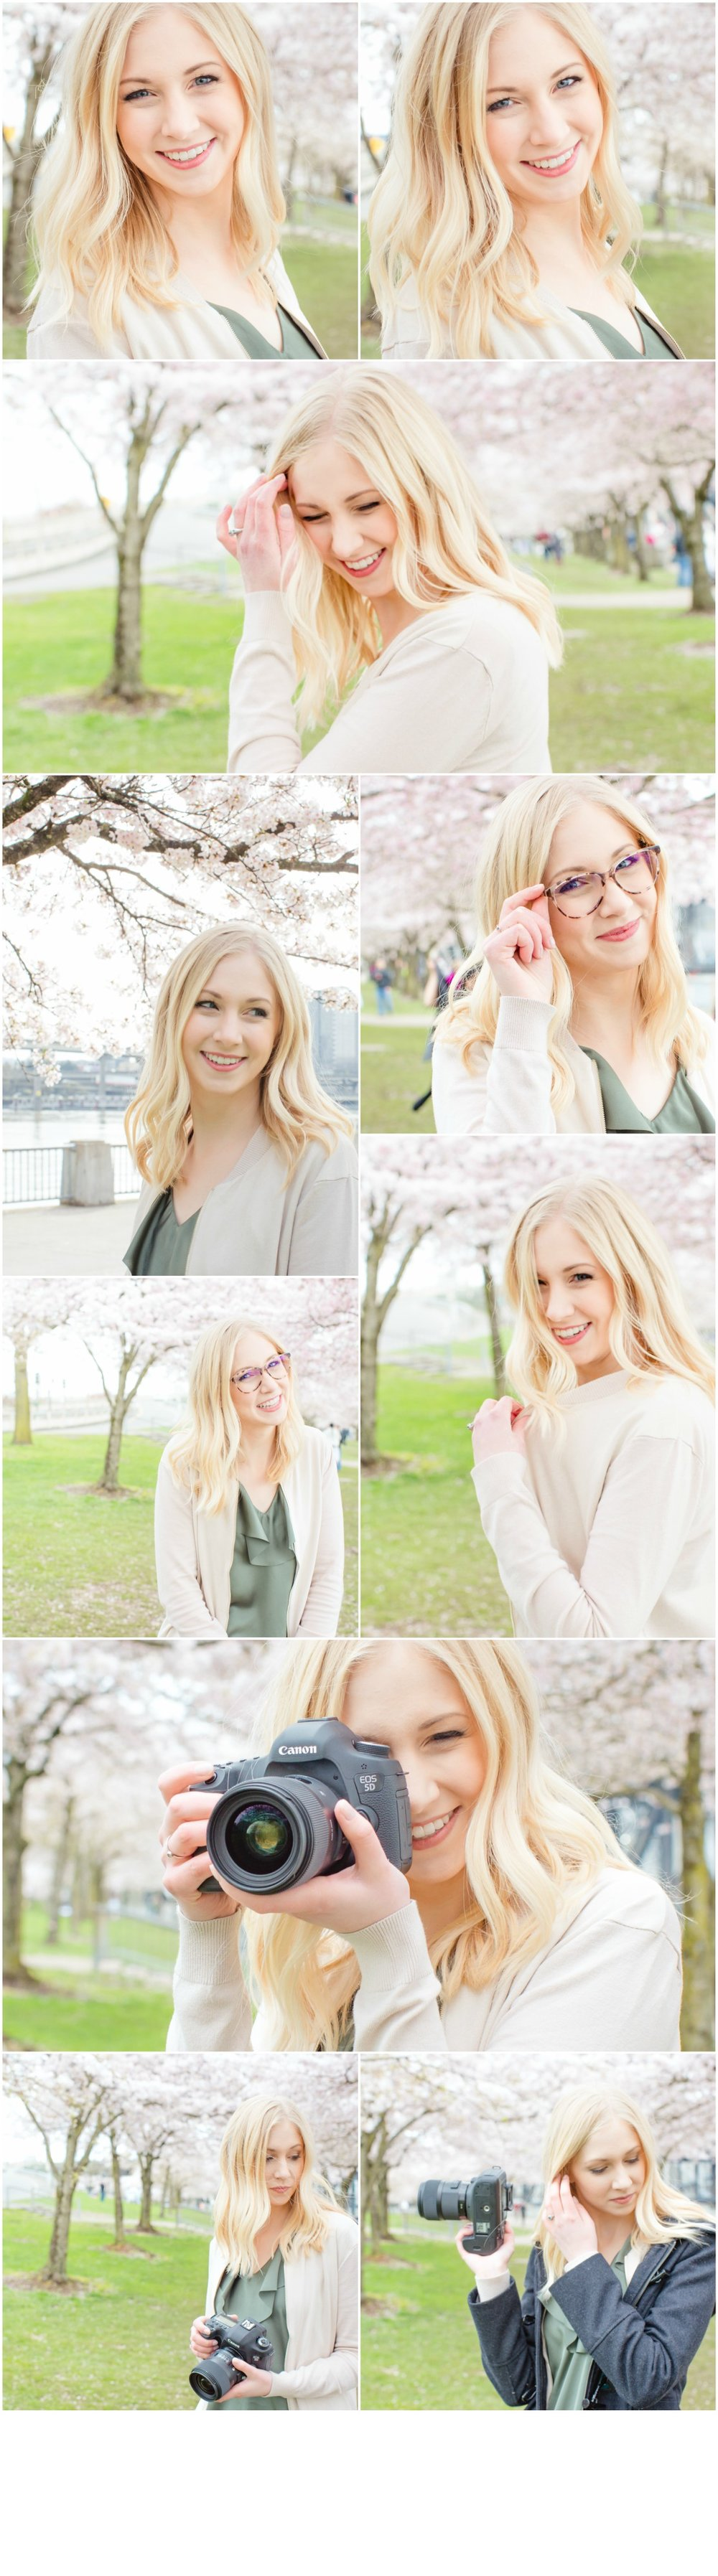 McKenna Olson Cherry Blossom Mini-Session with Photographer Brianne of Brightly & Co.